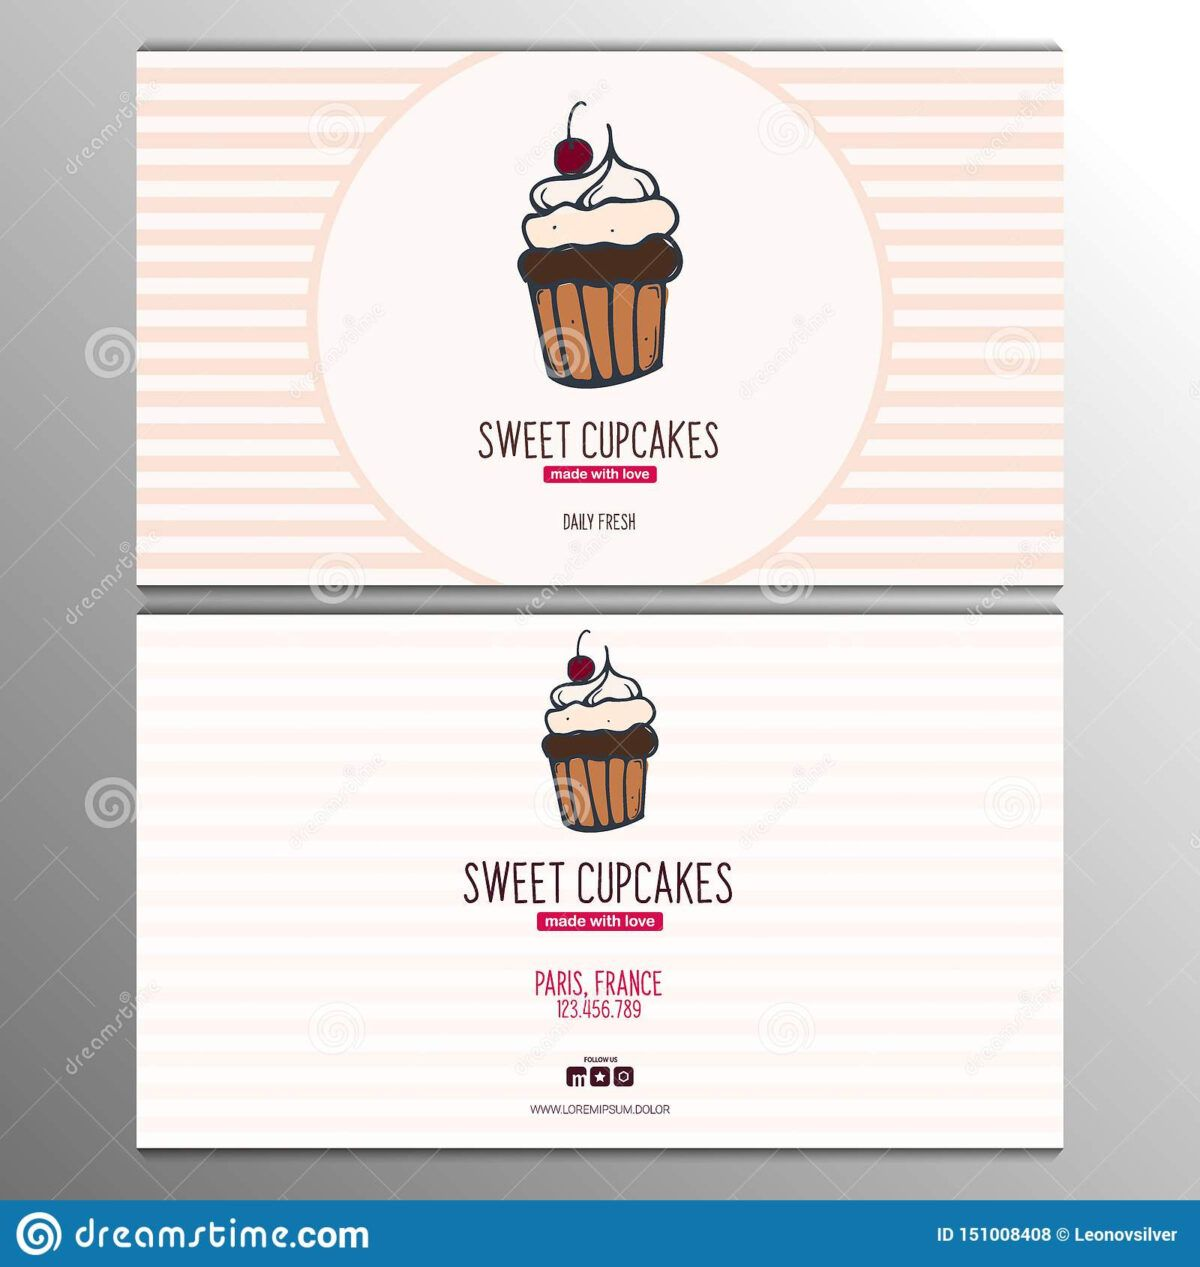 Cupcake Or Cake Business Card Template For Bakery Or Pastry Throughout Cake Business Ca Free Business Card Templates Card Templates Free Business Card Template